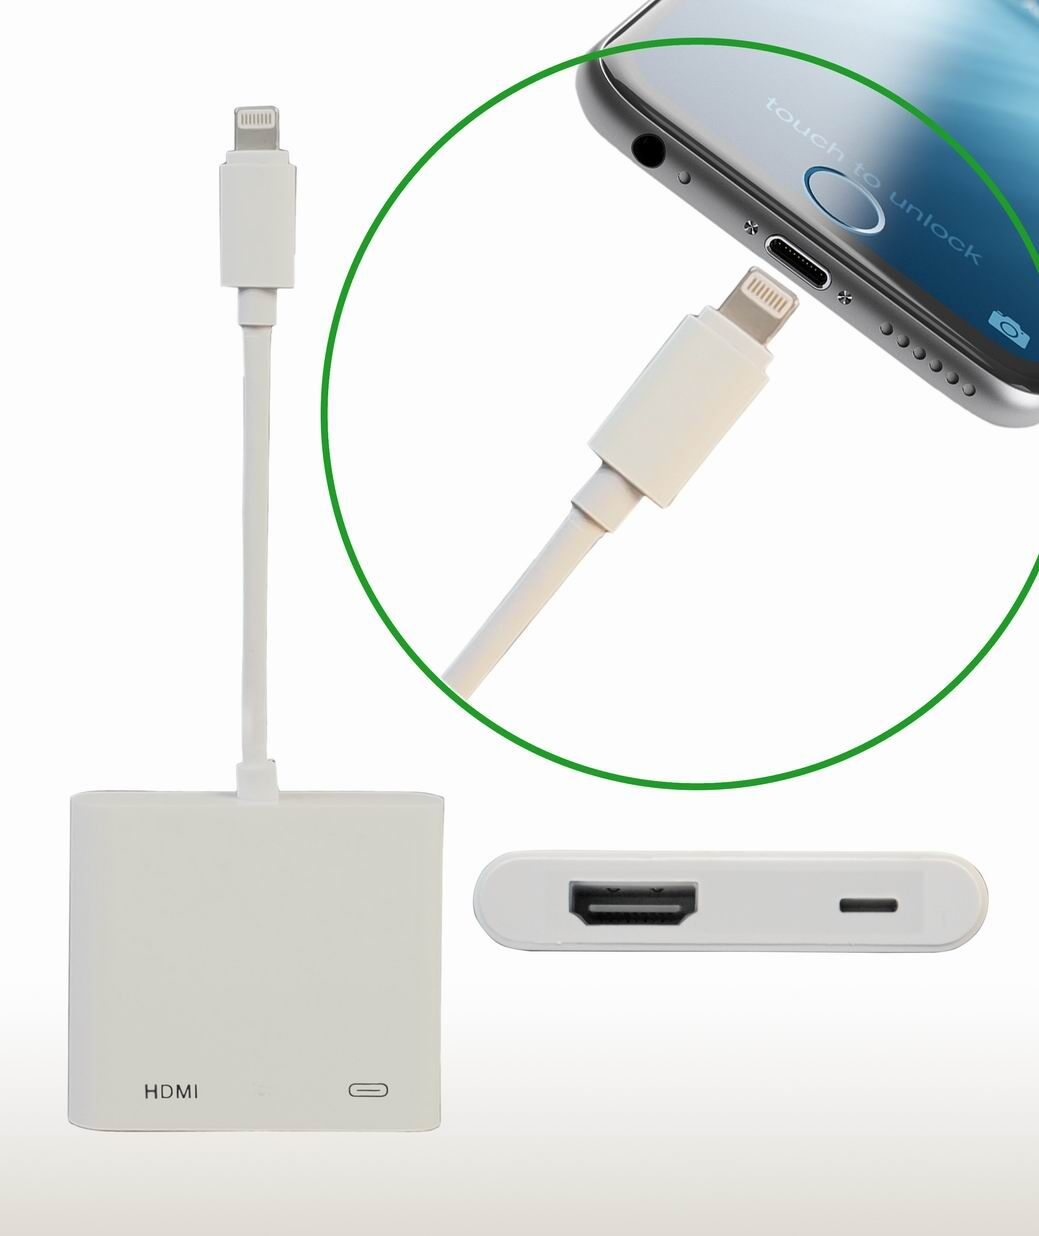 digital av adapter iphone 6 superb choice not for netflix and prime lightning 16860